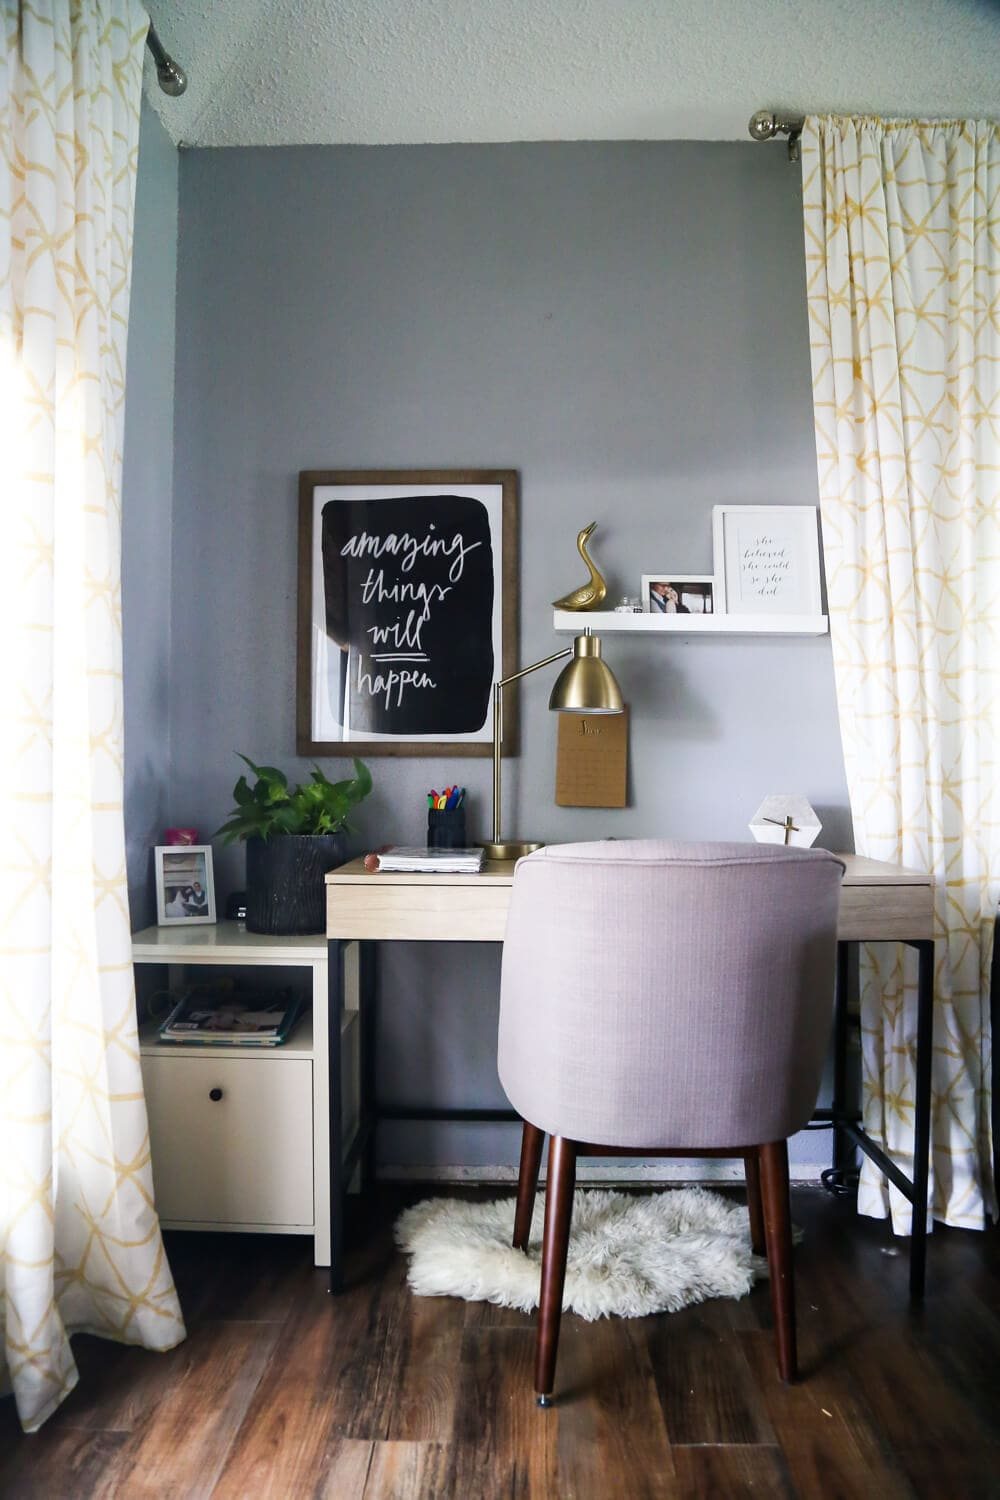 Tips for creating a budget home office nook for your home where you can focus on work, get things done, and not make the rest of your room look awful! Great ideas for a pretty and organized home office nook.